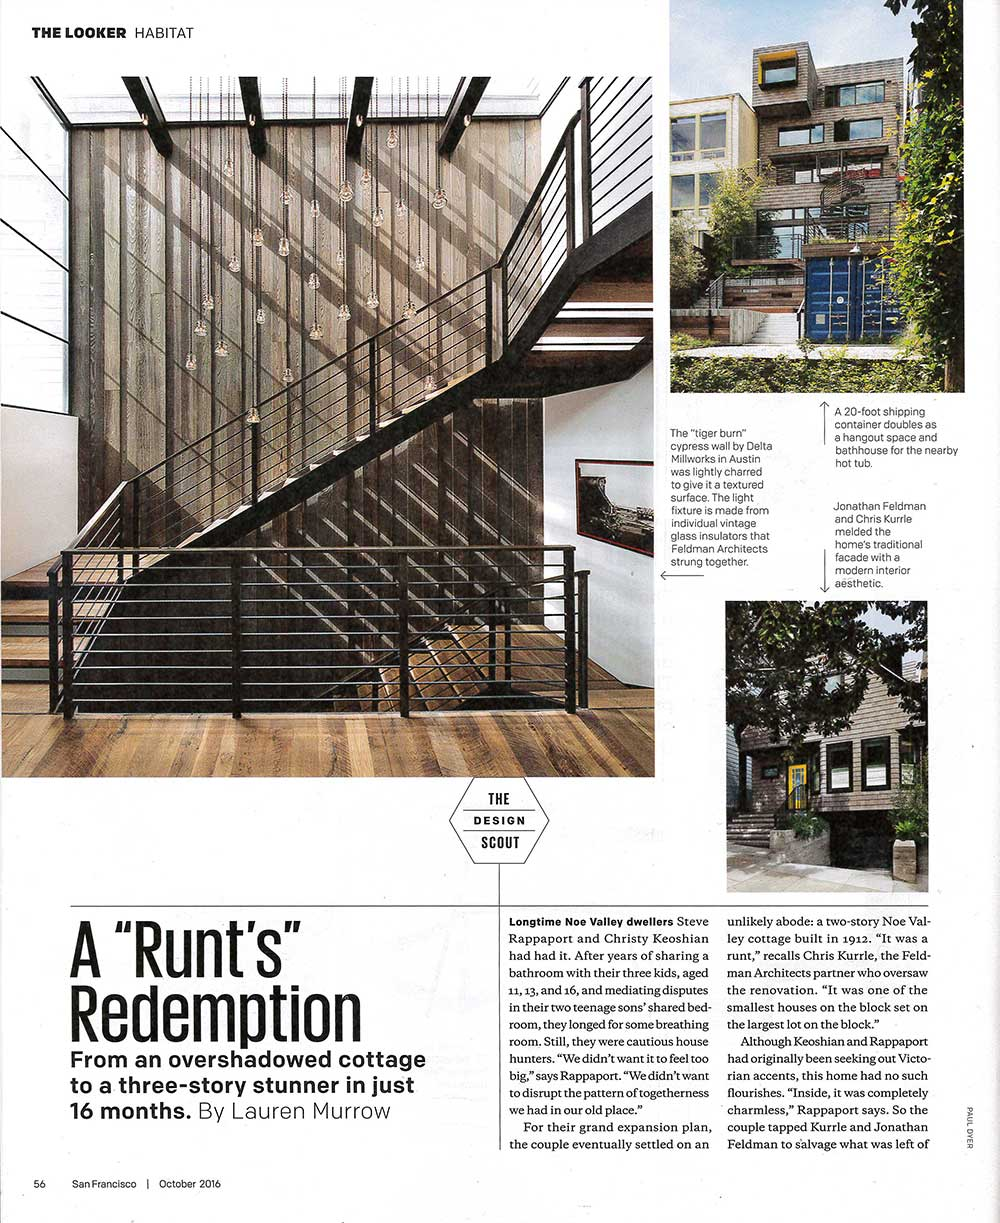 A spread of San Francisco Magazine shows Stacking the Deck with text.